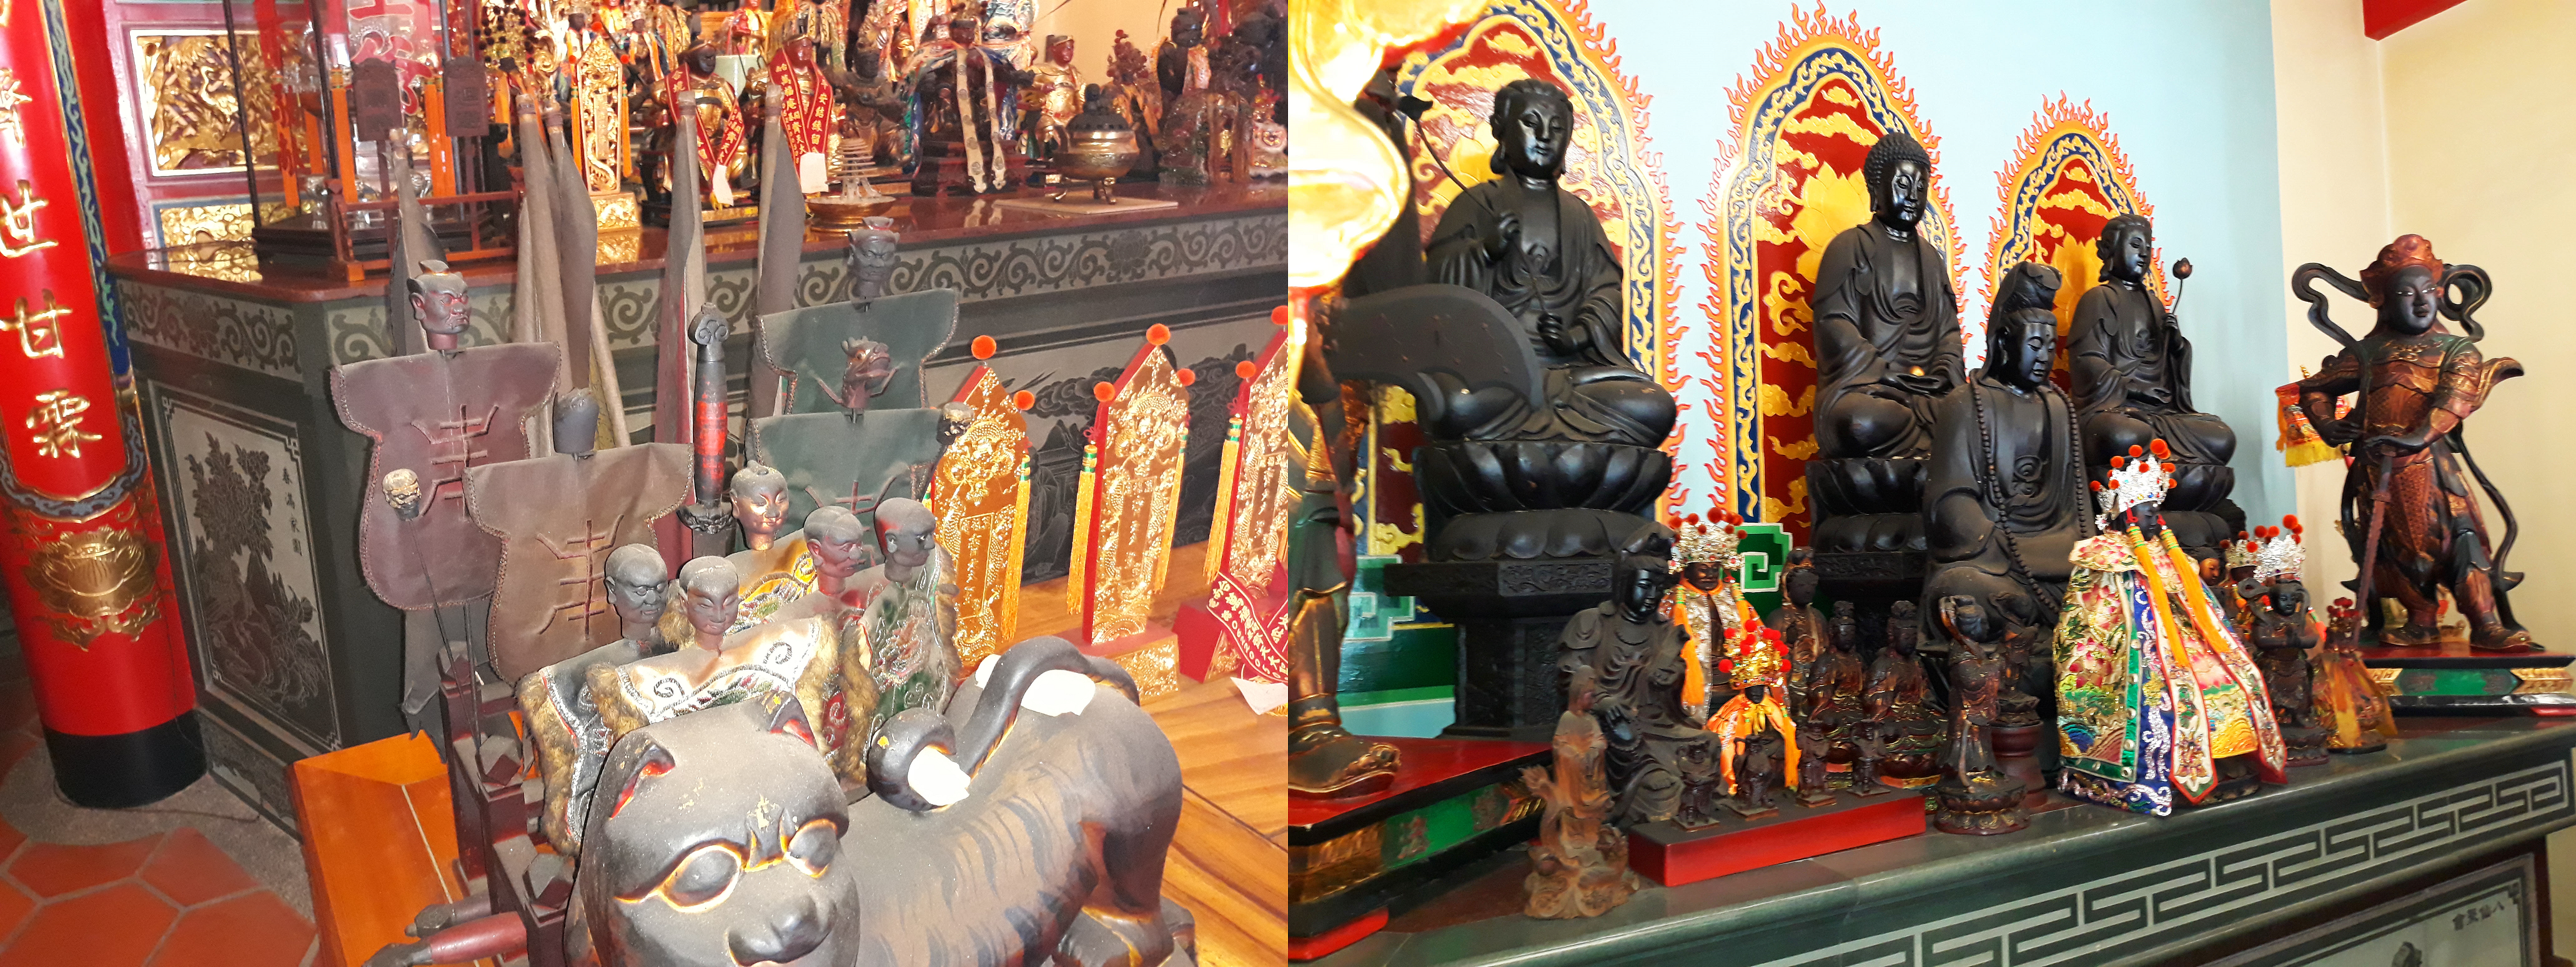 Soldiers and Guanyin